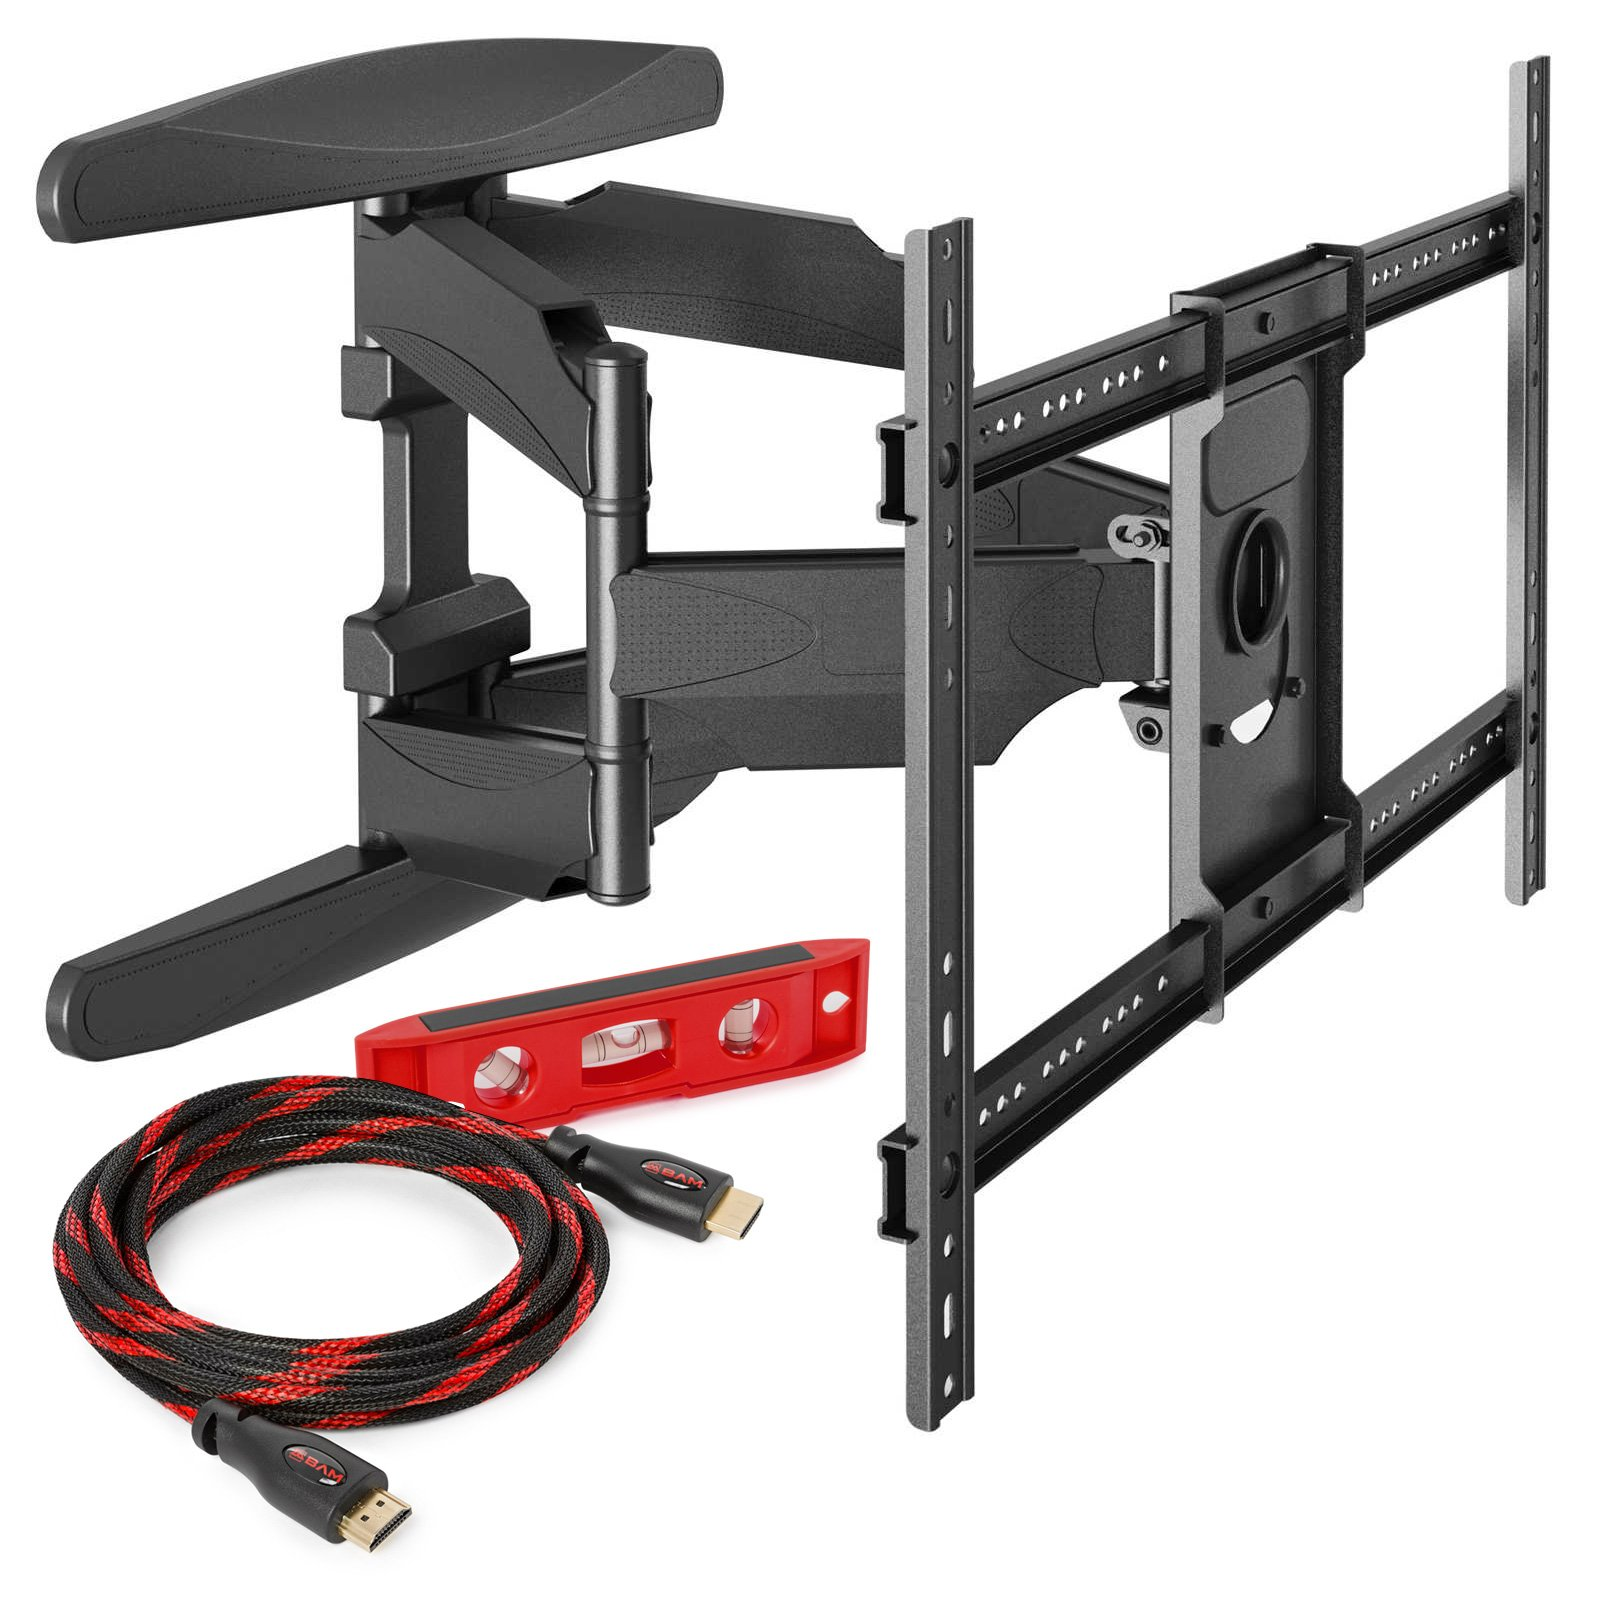 """Heavy-Duty Full Motion TV Wall Mount - Articulating Swivel Bracket Fits Flat Screen Televisions from 42"""" to 70"""" (VESA 400 x 600 Compatible) – Tilt Swing Out Arm with 10' HDMI Cable"""